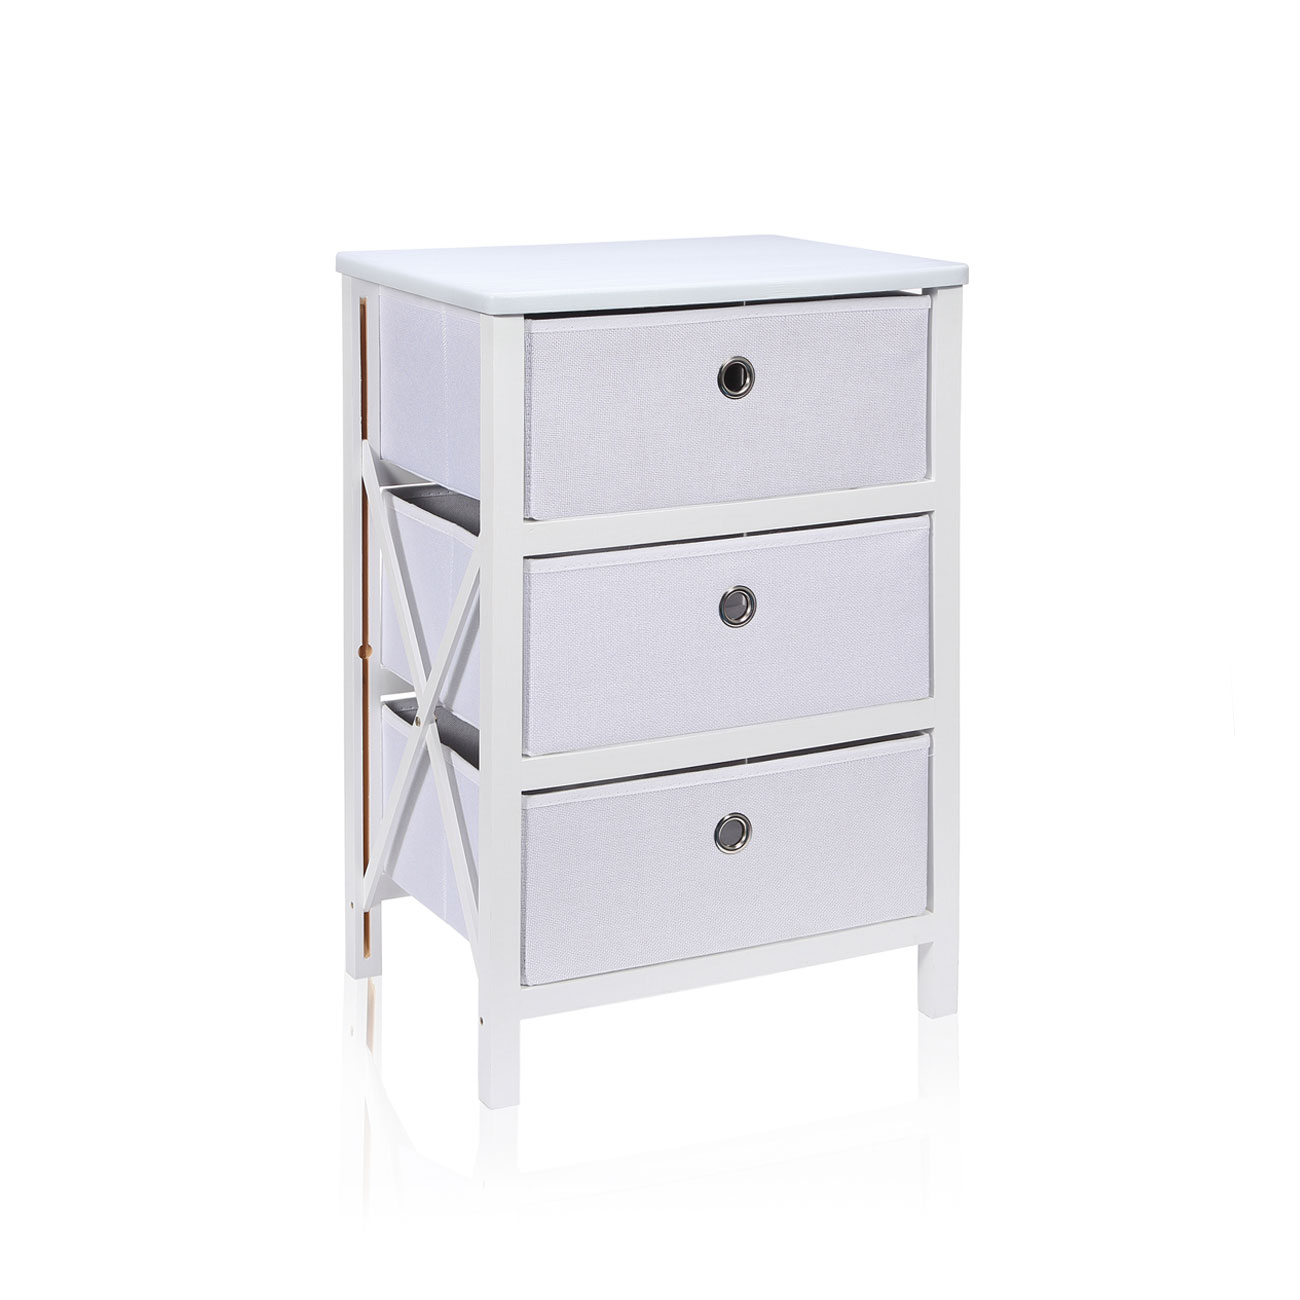 makika commode pliable avec 3 tiroirs en blanc maison. Black Bedroom Furniture Sets. Home Design Ideas